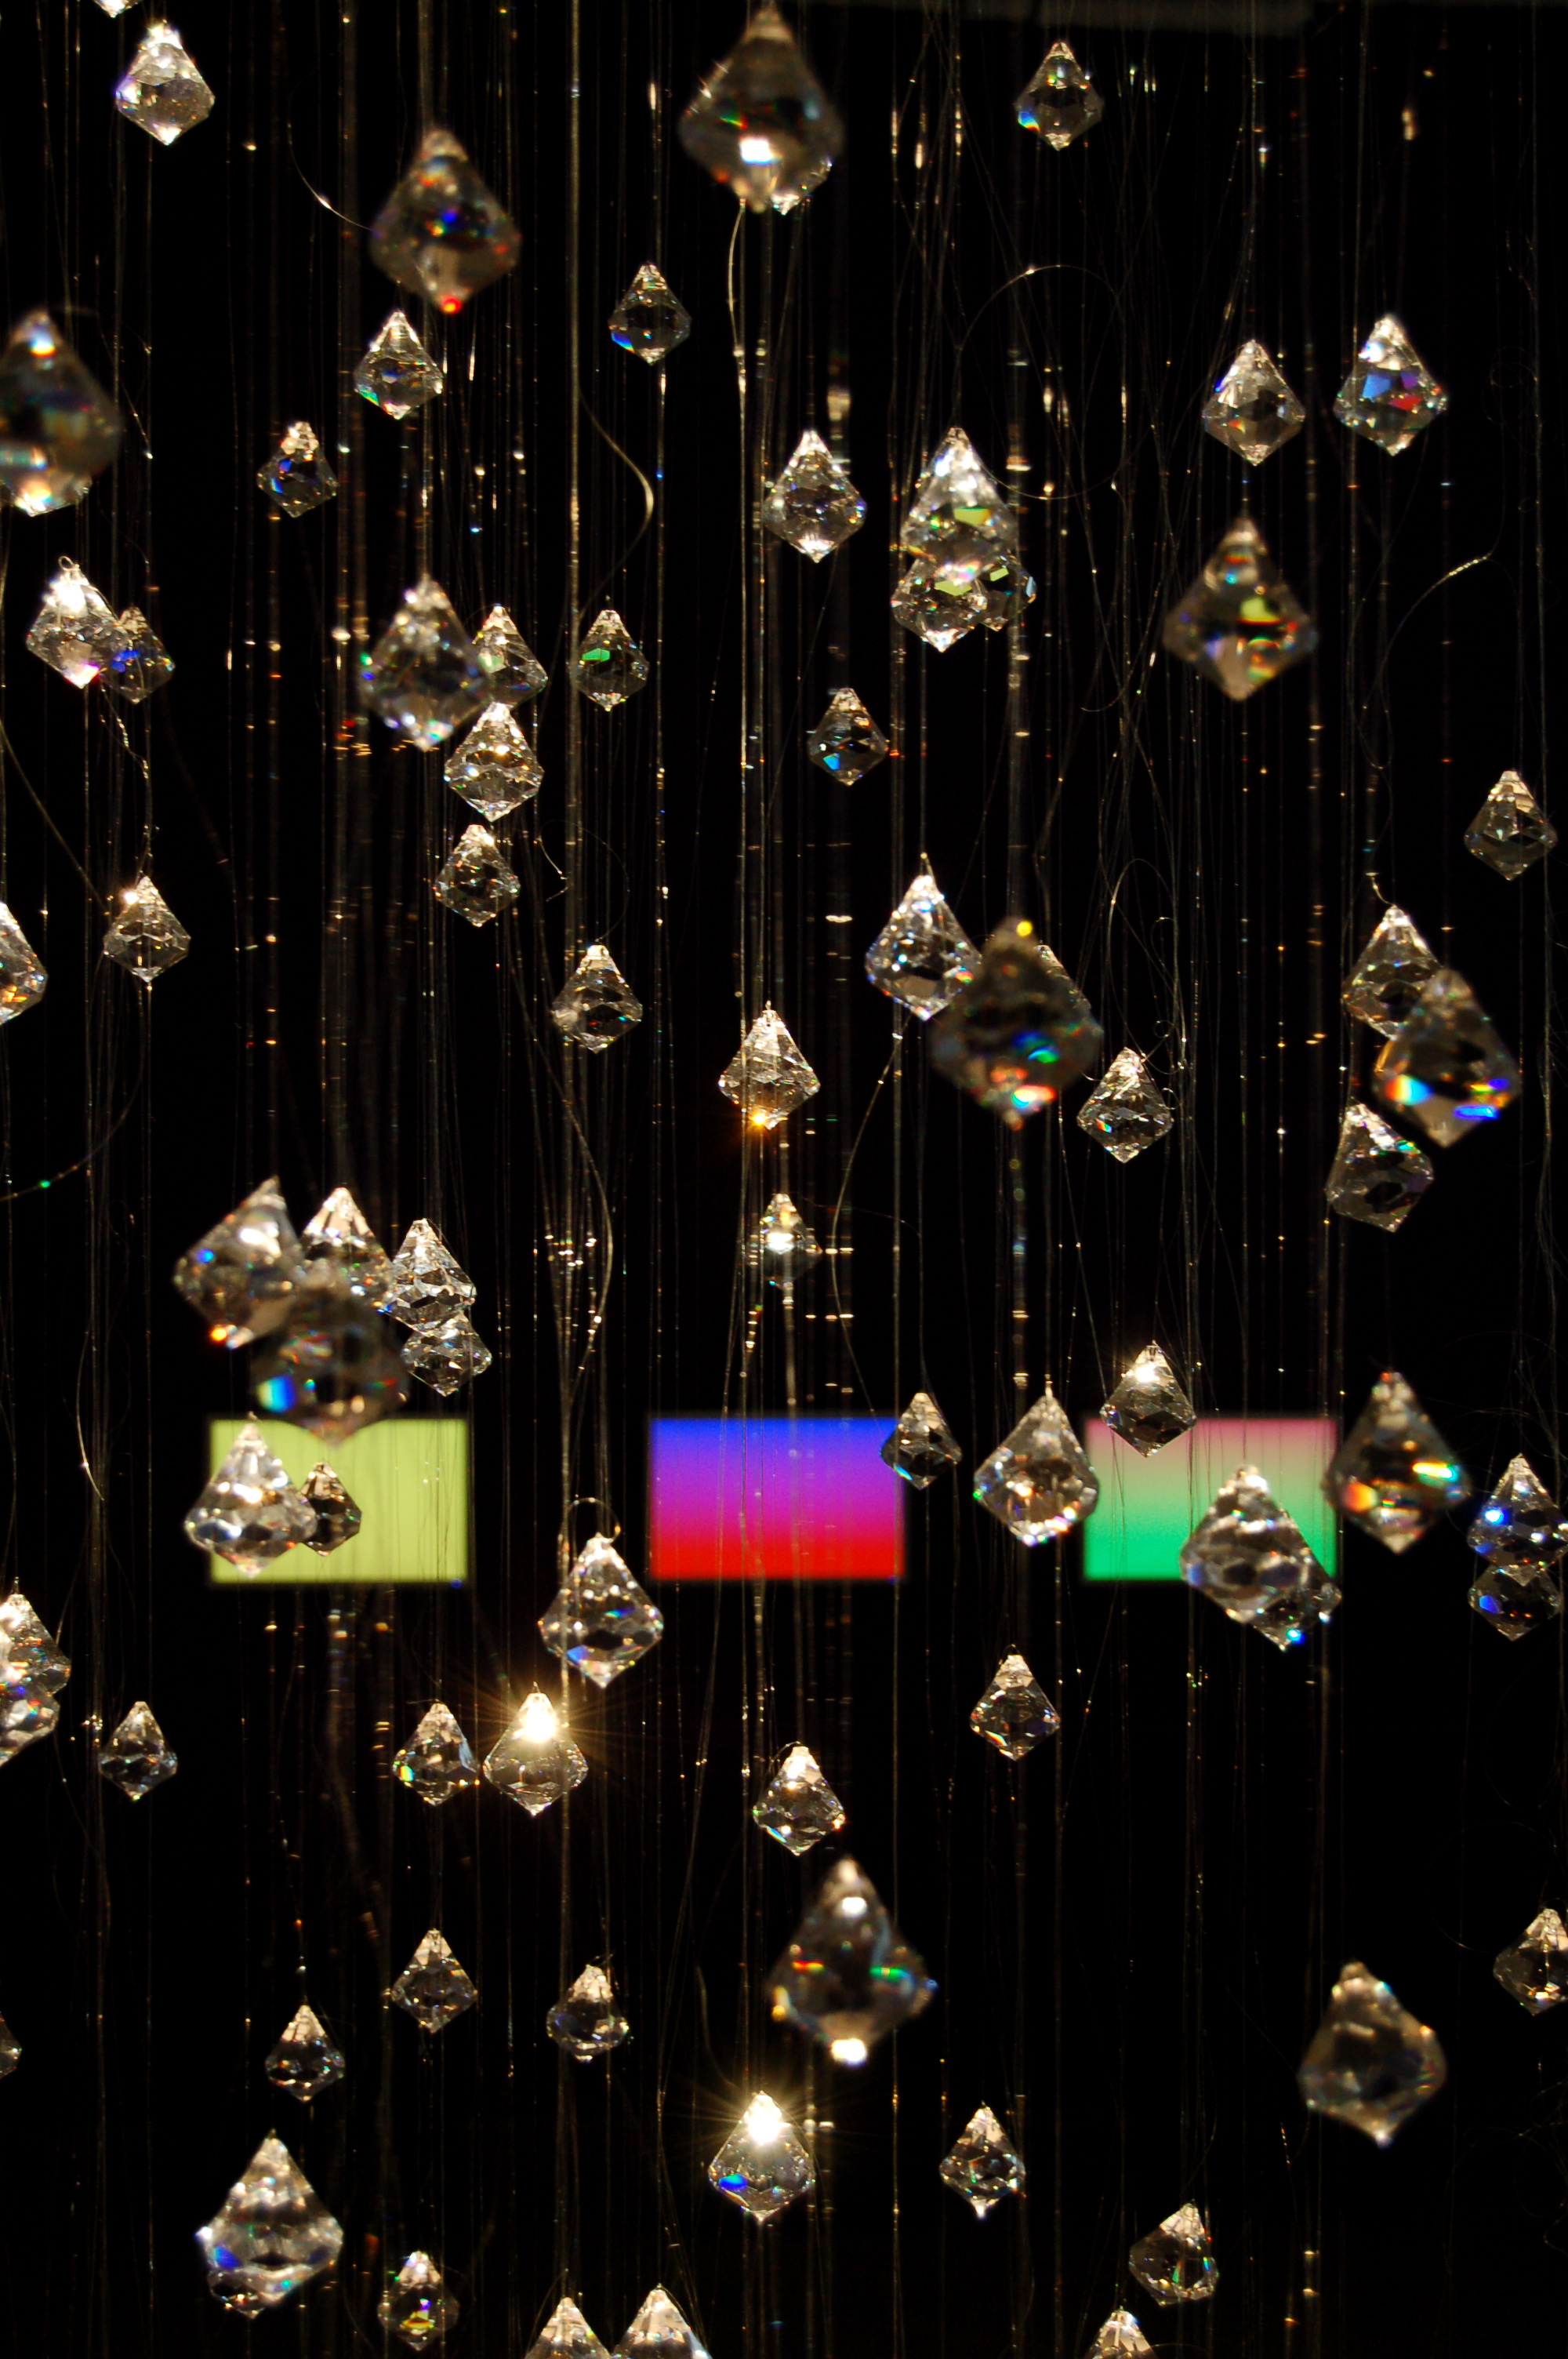 Cosmic_dropout_installation_8